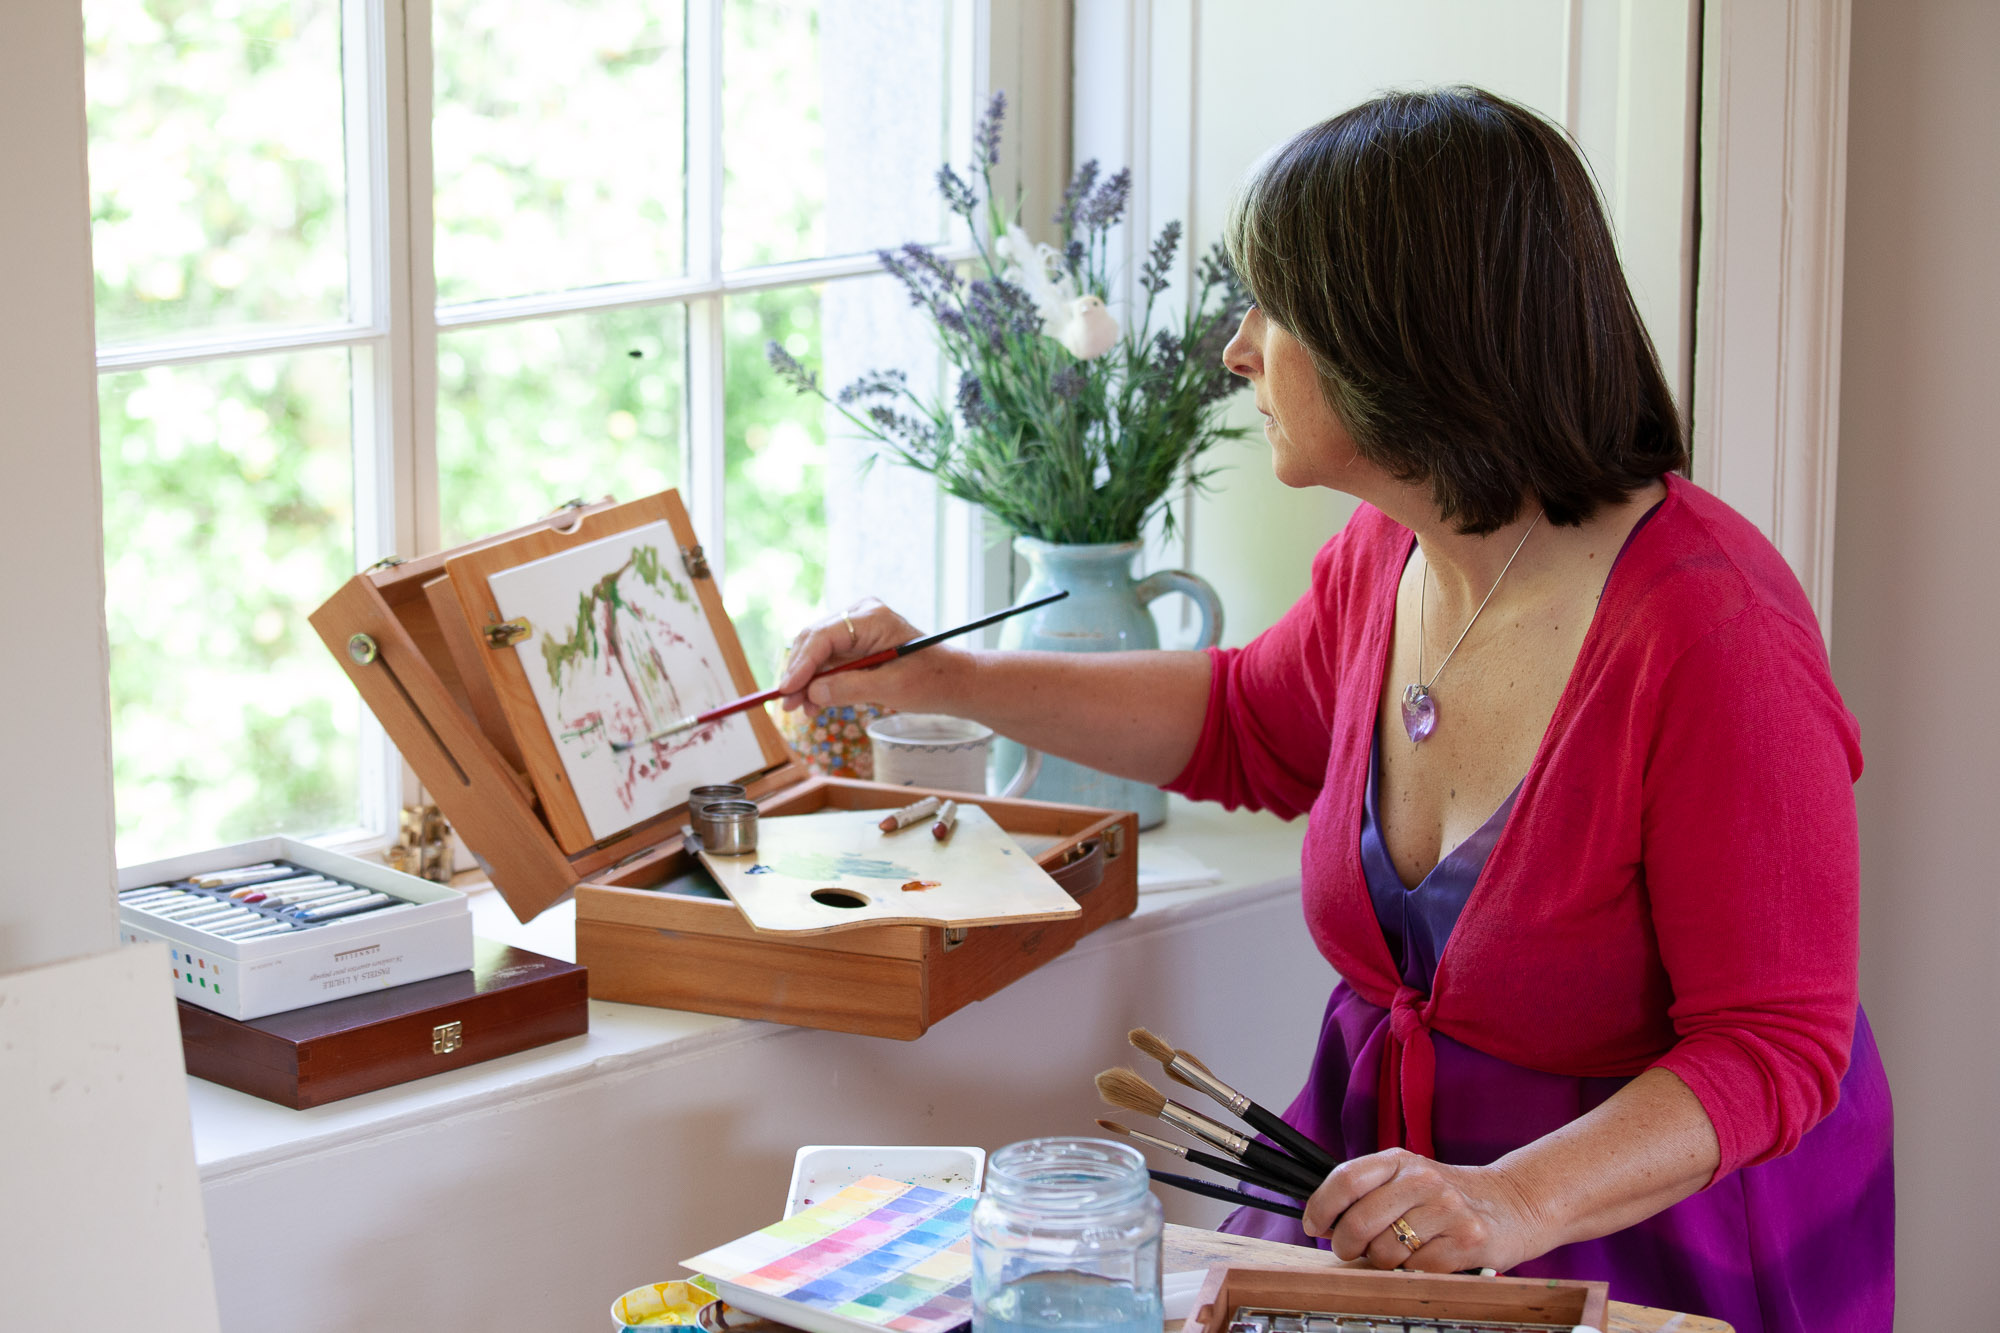 The deep window sills are perfect for holding my art materials and new pochade box for my oils